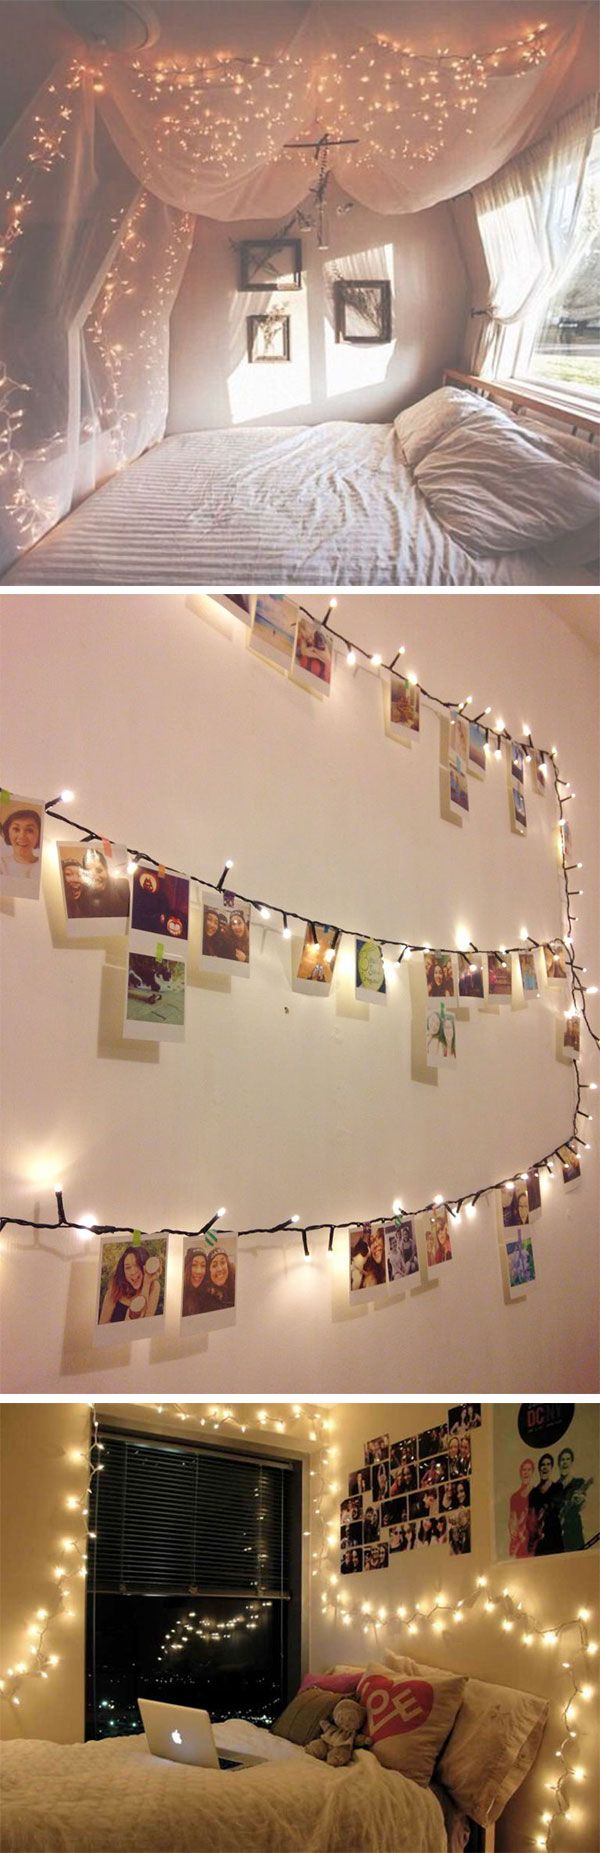 13 ways to use fairy lights to make your home look magical inspiration pictures and glow - Diy Bedroom Decor Ideas